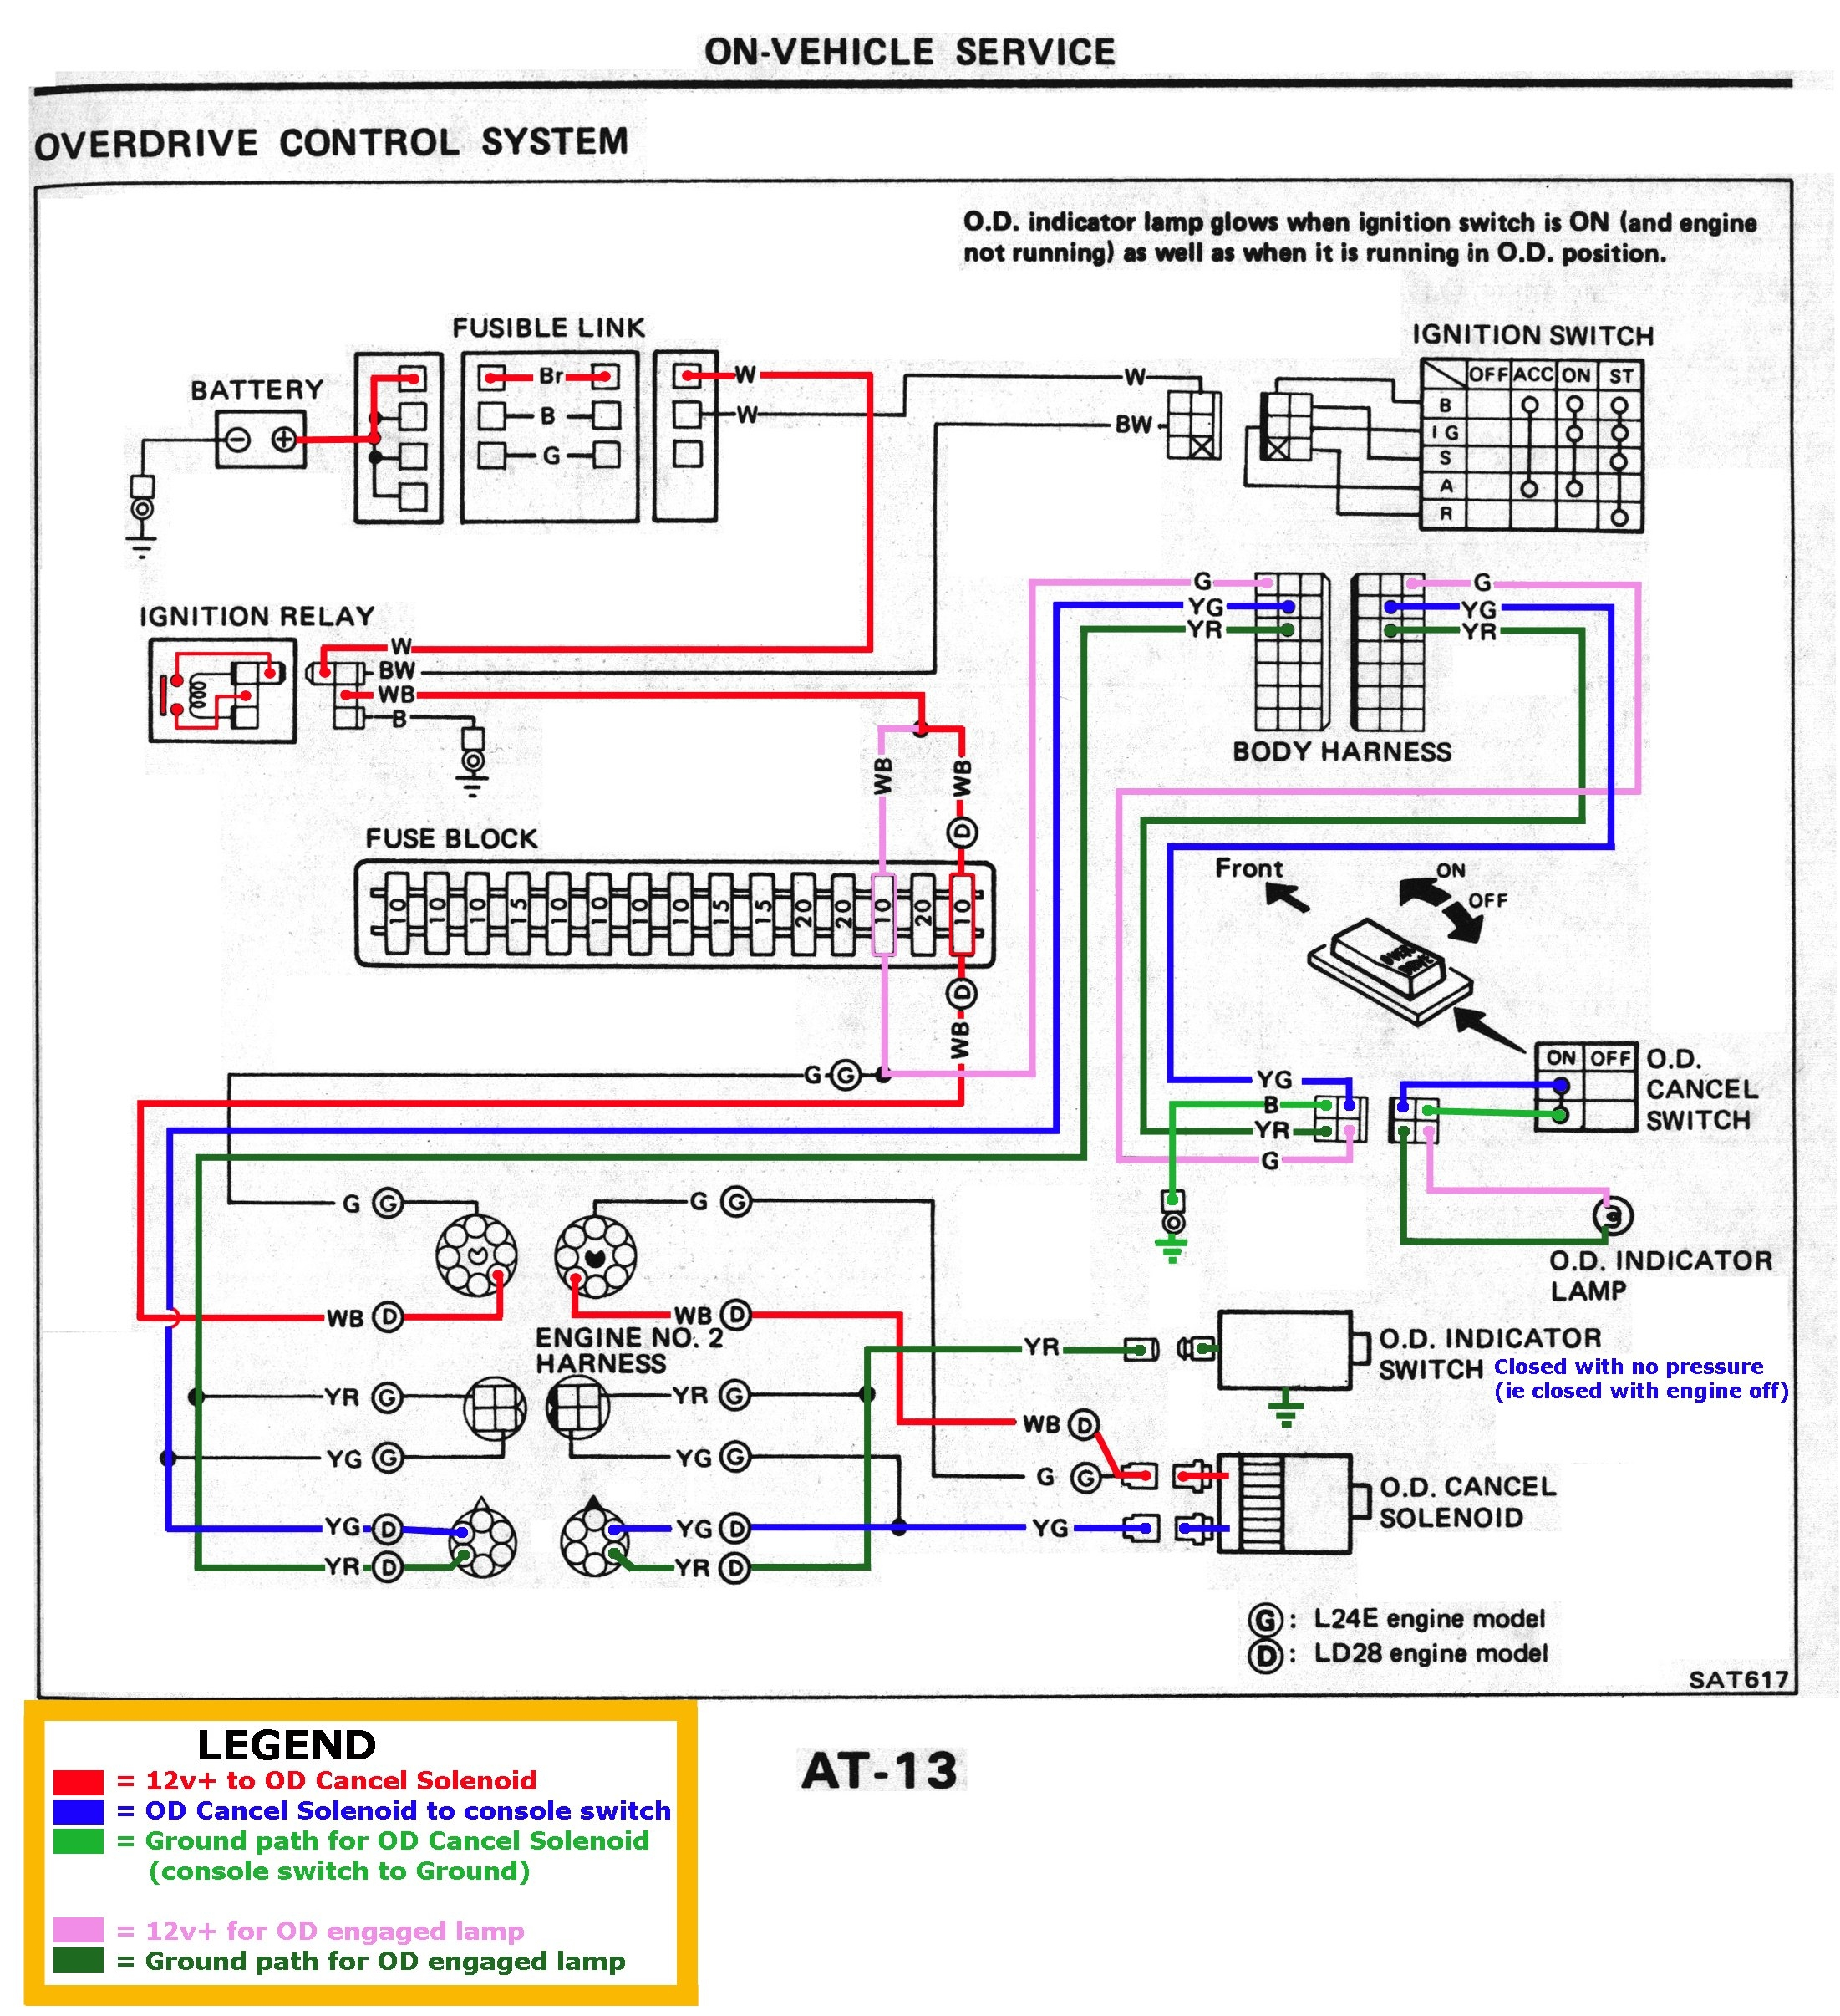 asco solenoid valve wiring diagram Download-solenoid valve wiring schematic Collection Gas solenoid Valve Wiring Diagram Inspirational Nissan sel forums • DOWNLOAD Wiring Diagram 14-b